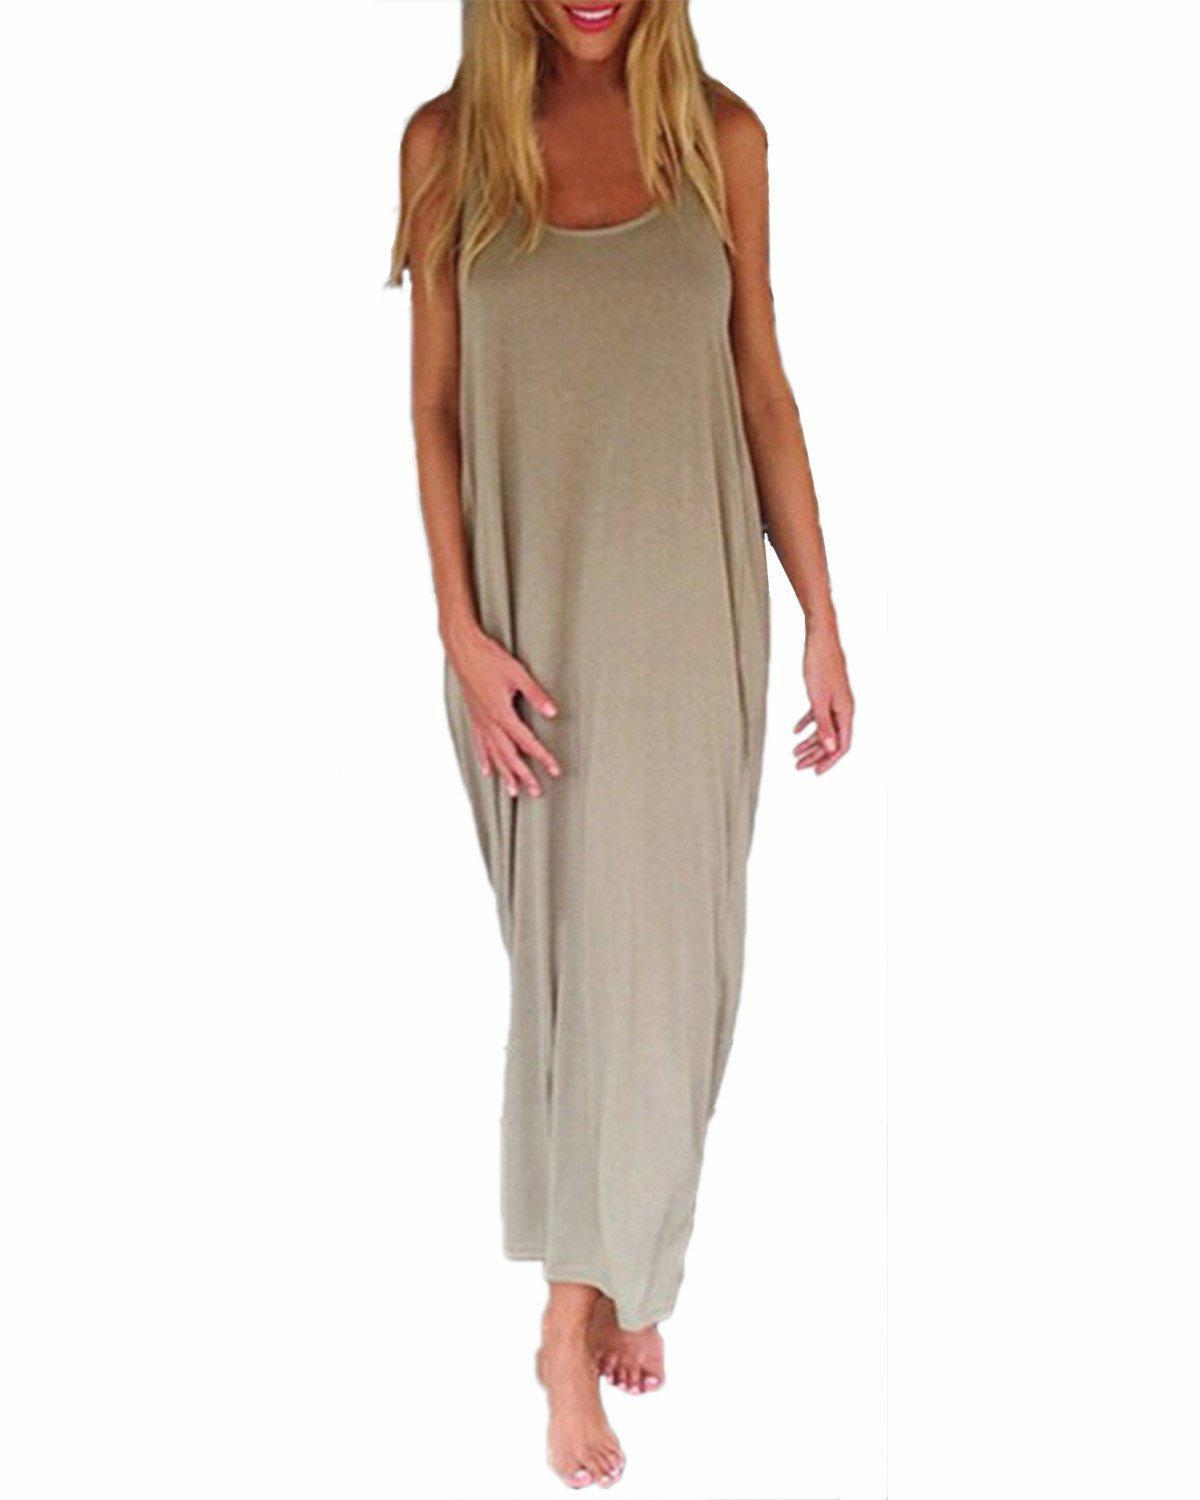 Zanzea Brand Vestidos 2016 Women Fashion Casual Loose Solid Dress Sleeveless Backless Long Maxi Beach Dresses Plus Size-Dress-SheSimplyShops